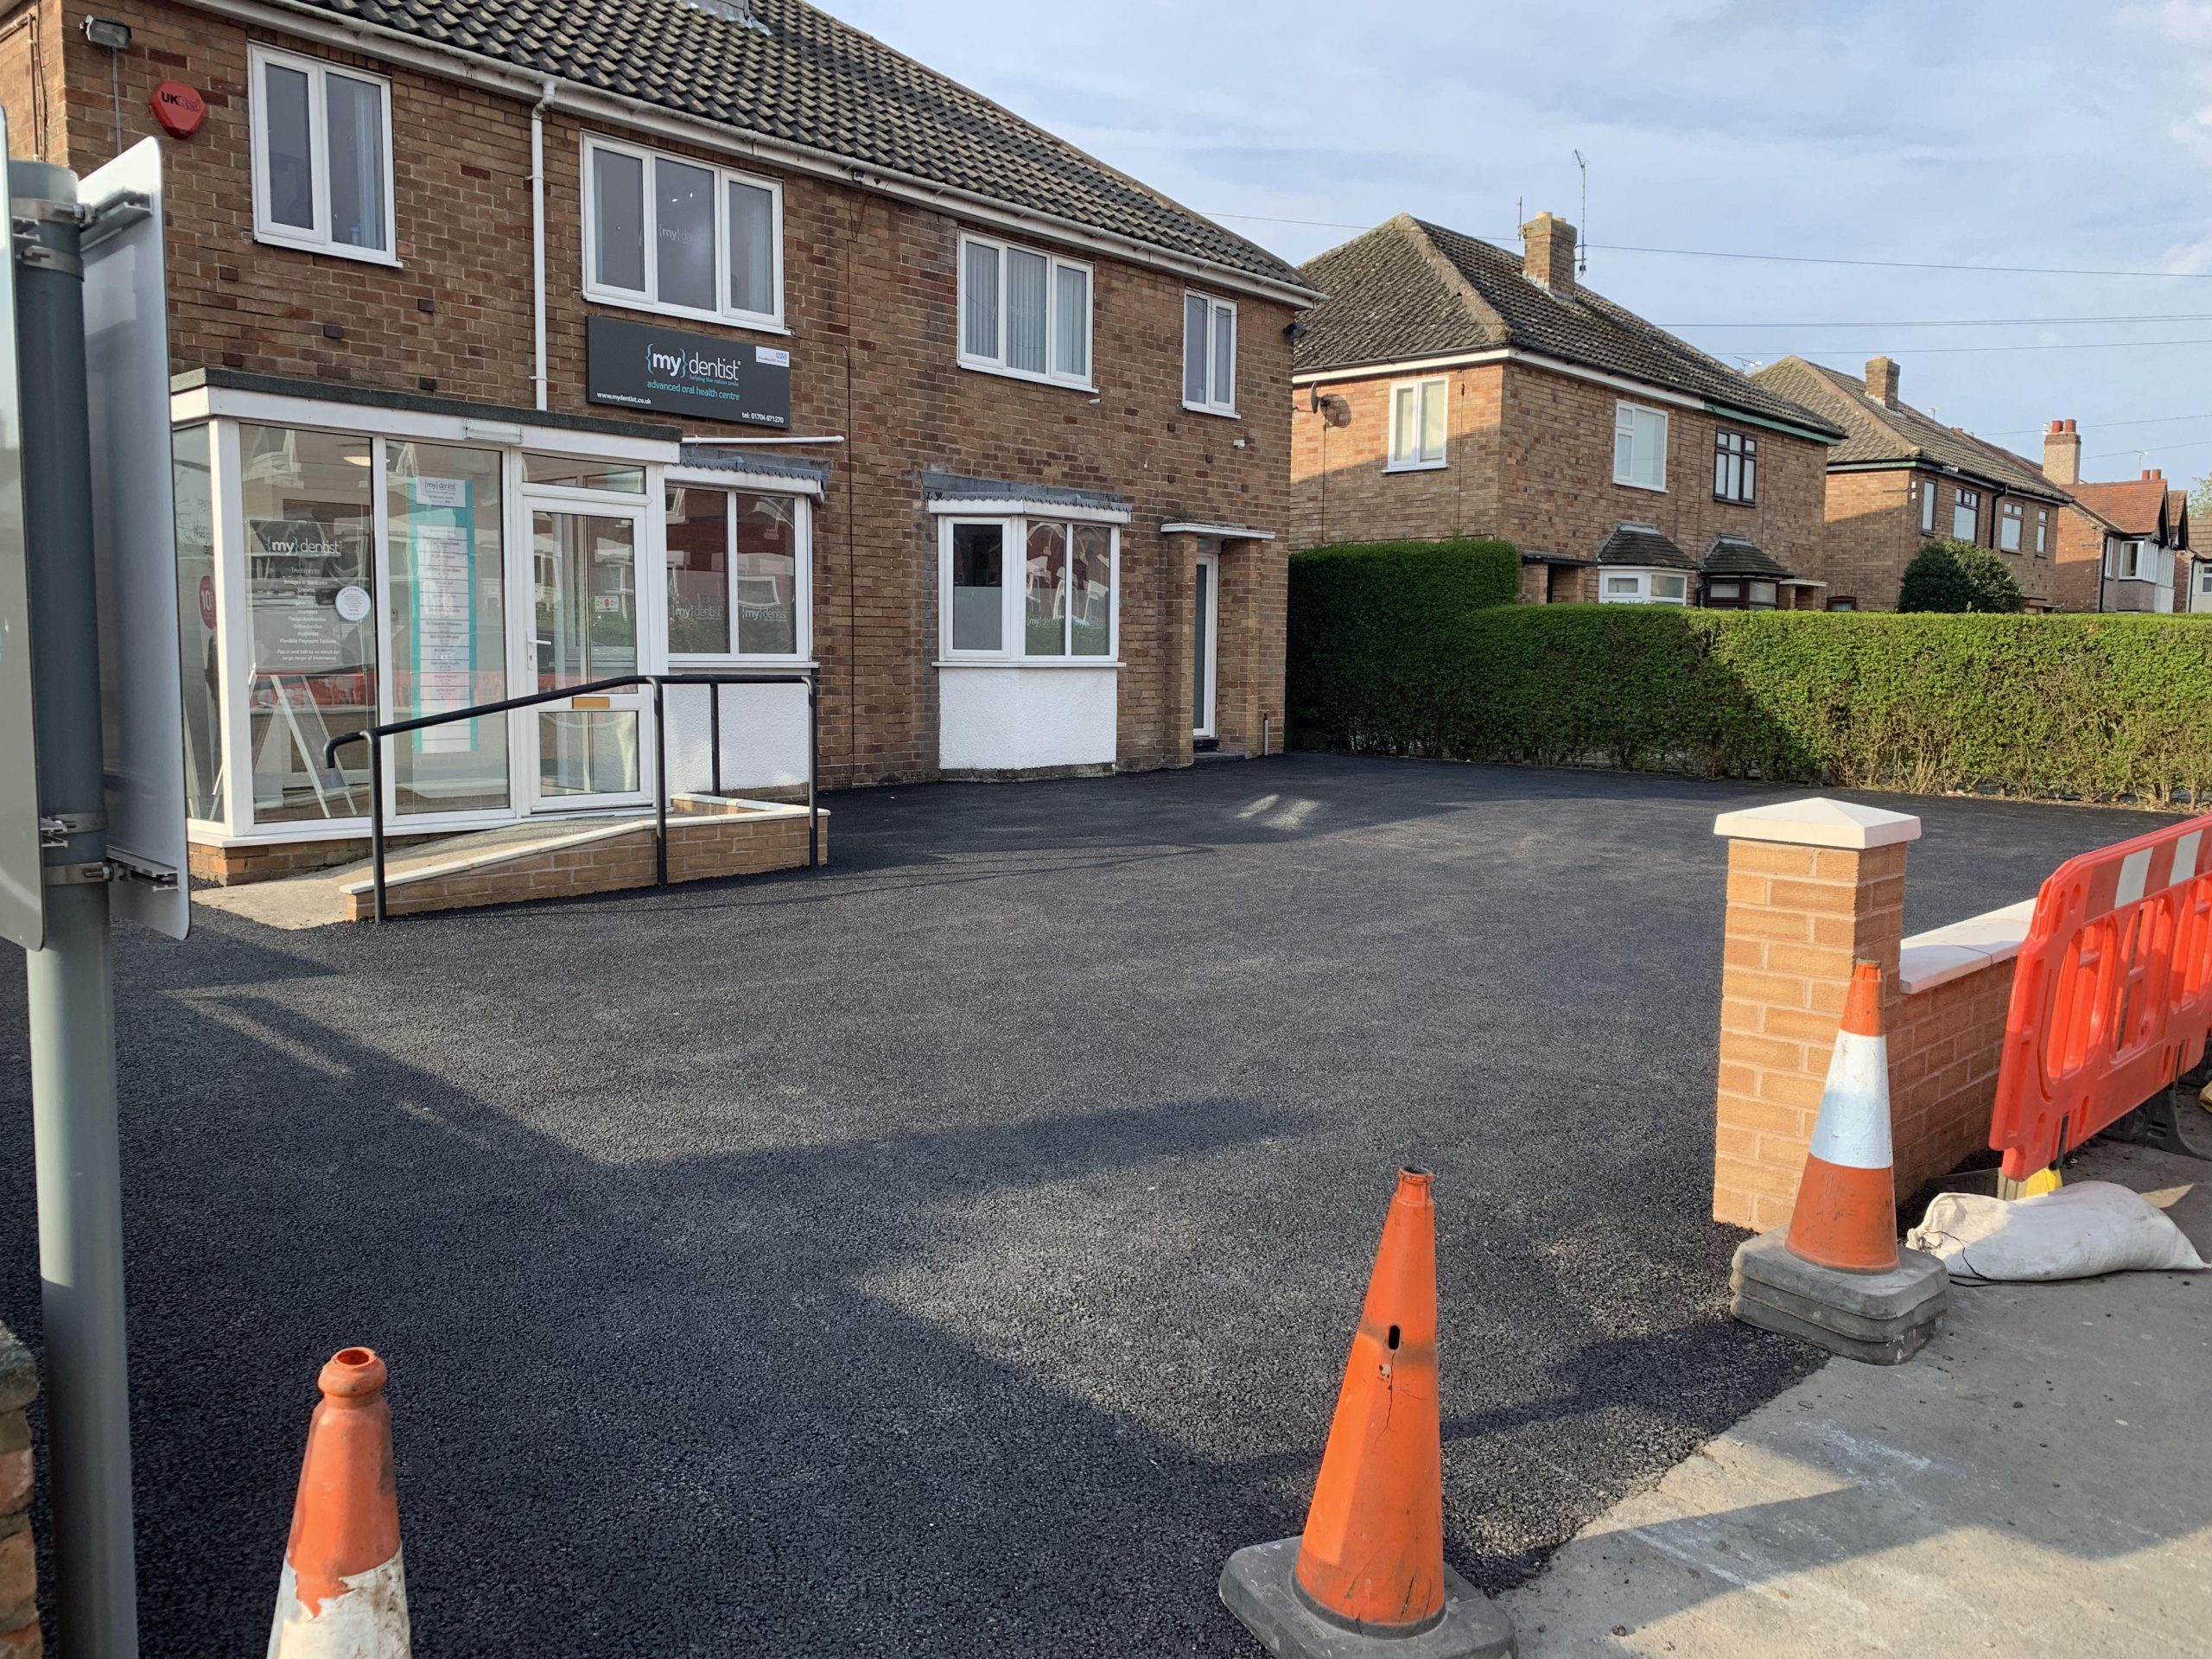 completed car park entrance my dentist formby